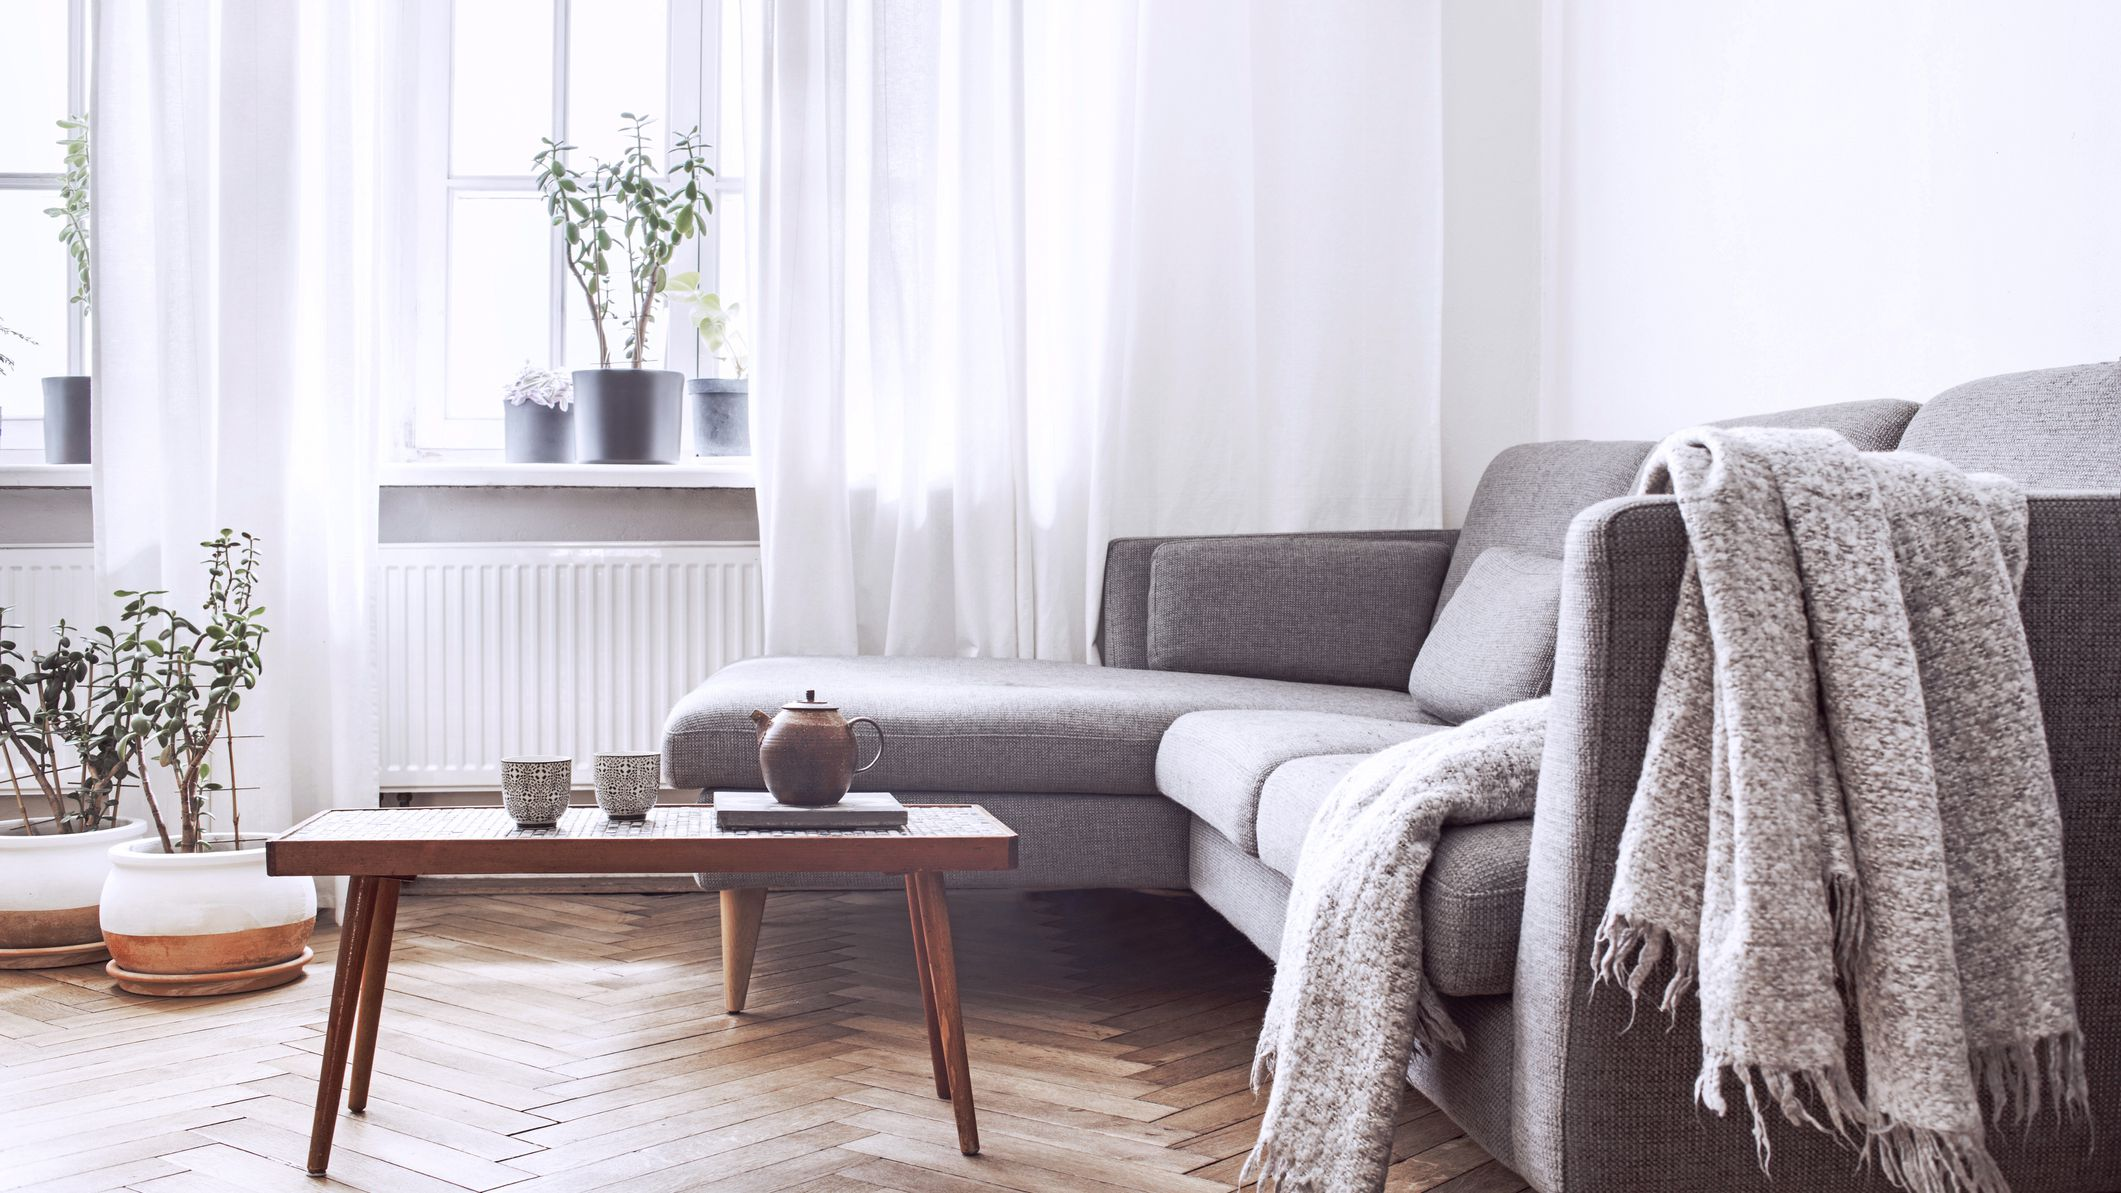 Decorating An Apartment On A Budget, Living Room Ideas Apartment